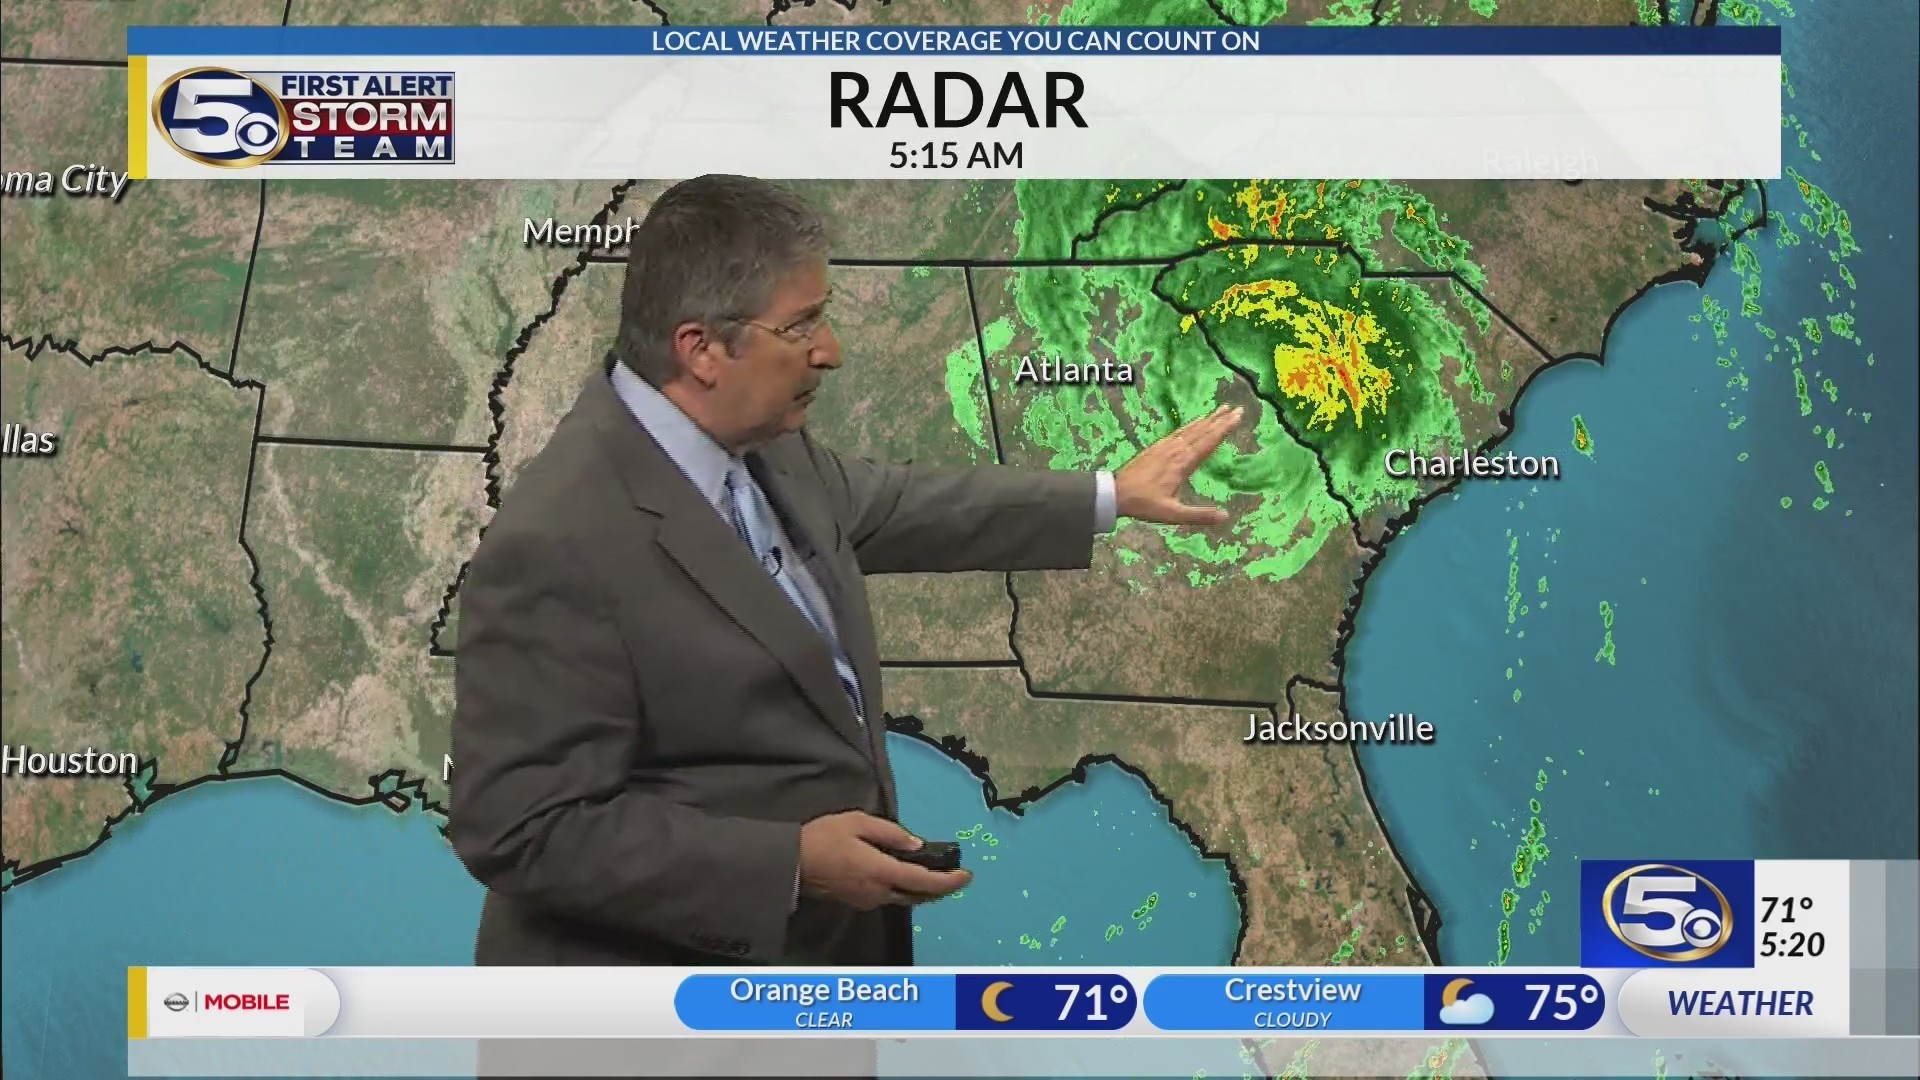 Michael Moves Out, Fall Weather Moves In